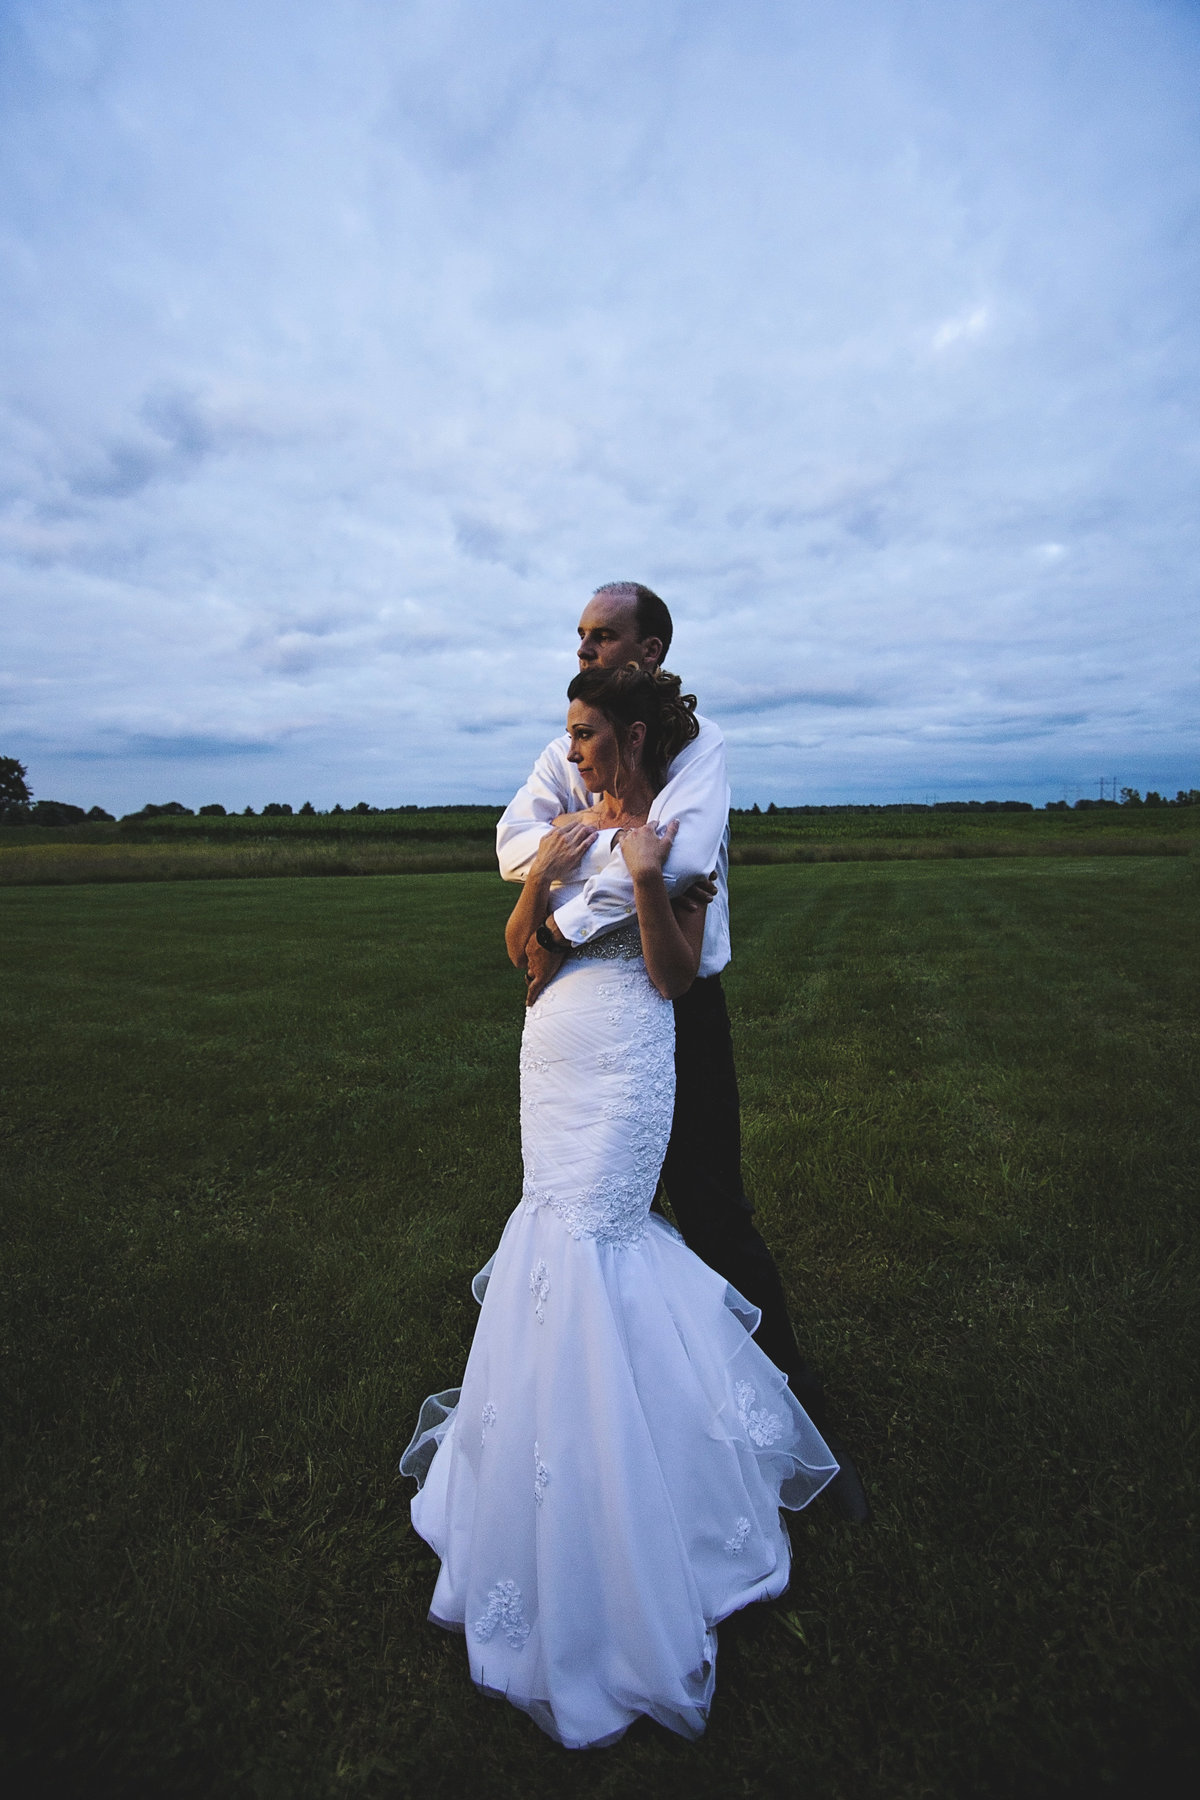 Bride and groom posing at sunset rustic chic wedding at Simply Country Barn by Casi Lea Photography-green bay wedding photographer-door county wedding photographer-milwaukee wedding photographer-appleton wedding photographer-wisconsin weddings